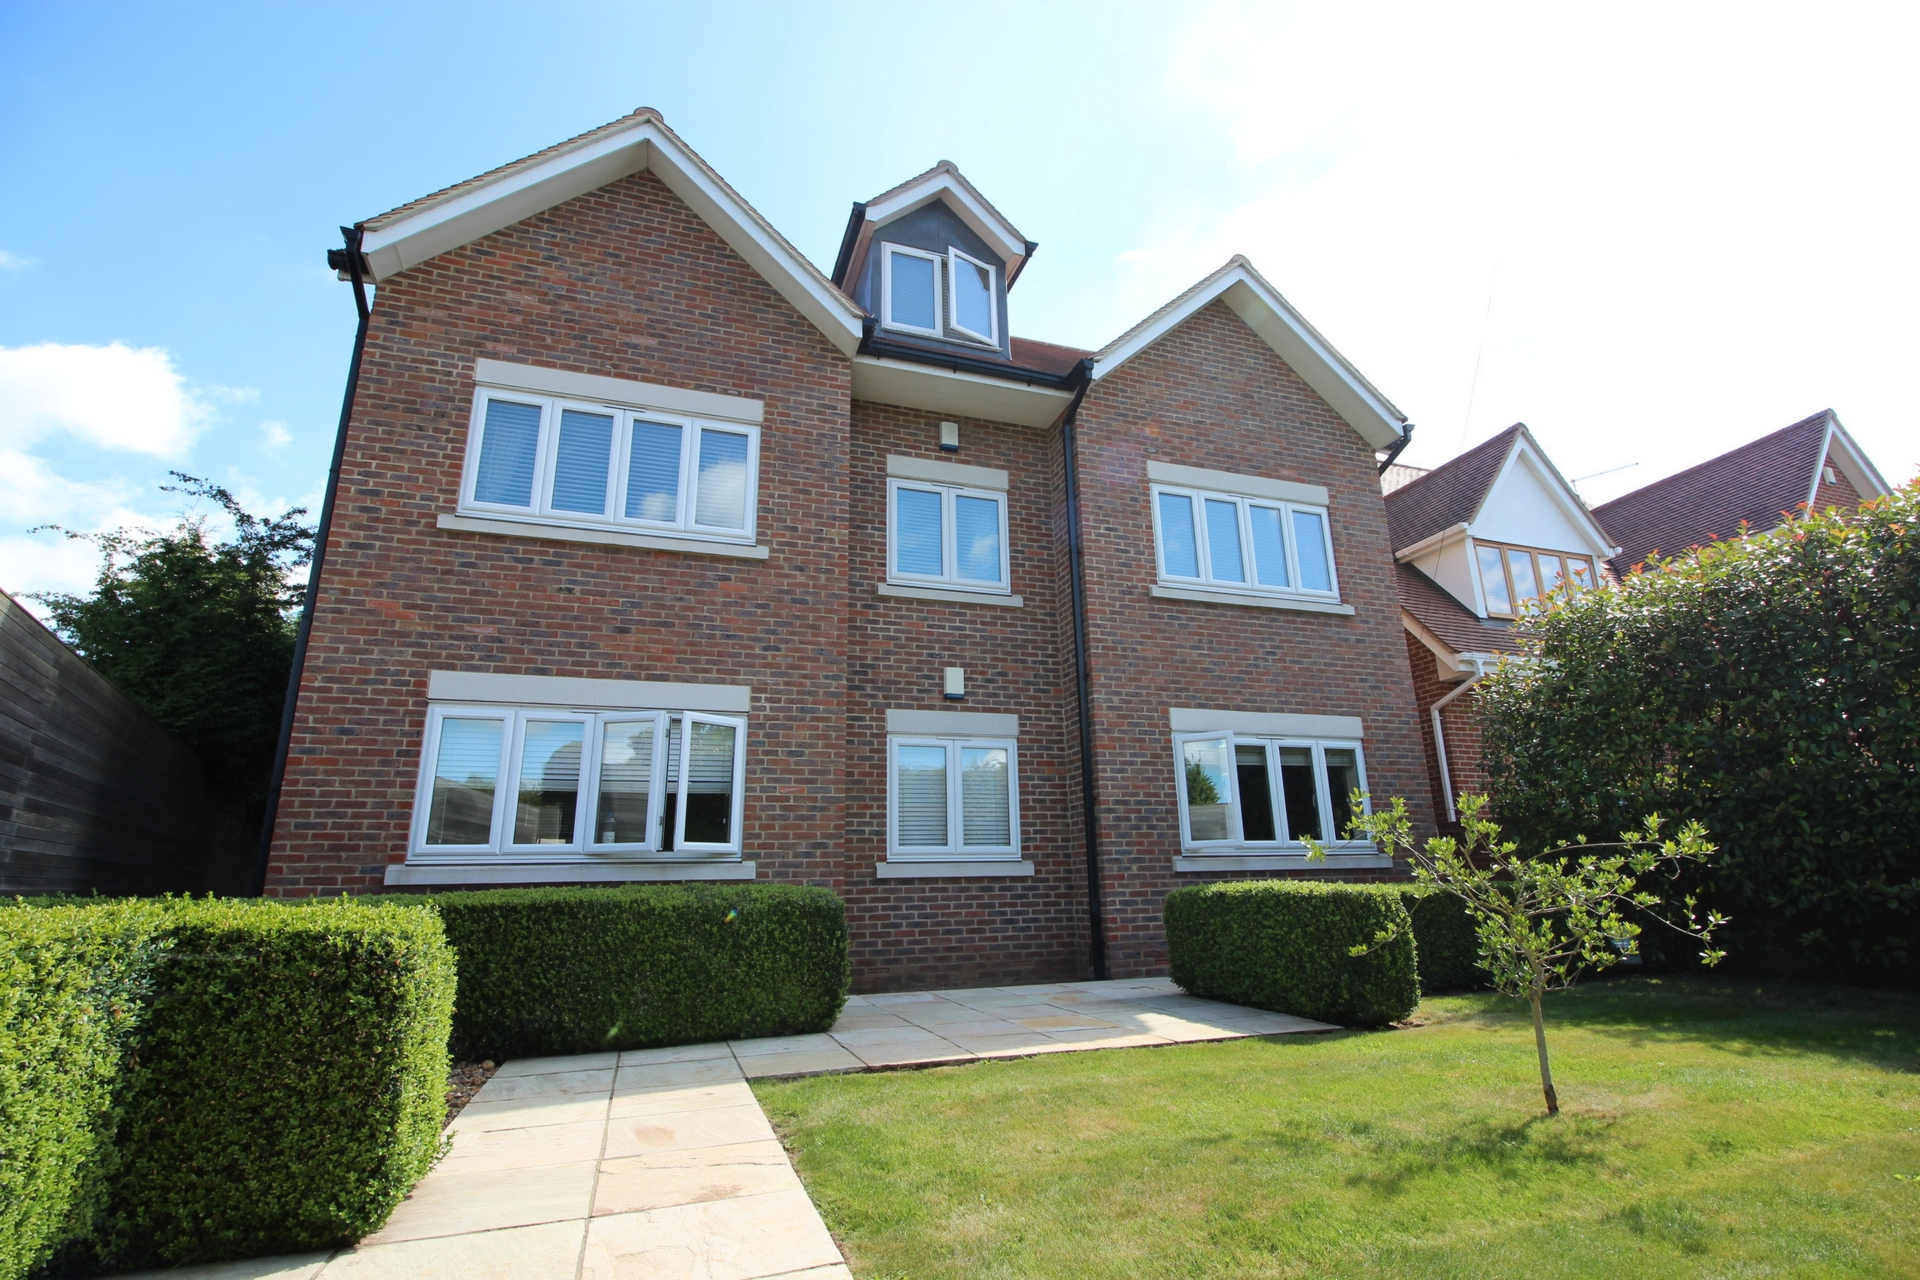 River View, Nazeing New Road, Broxbourne